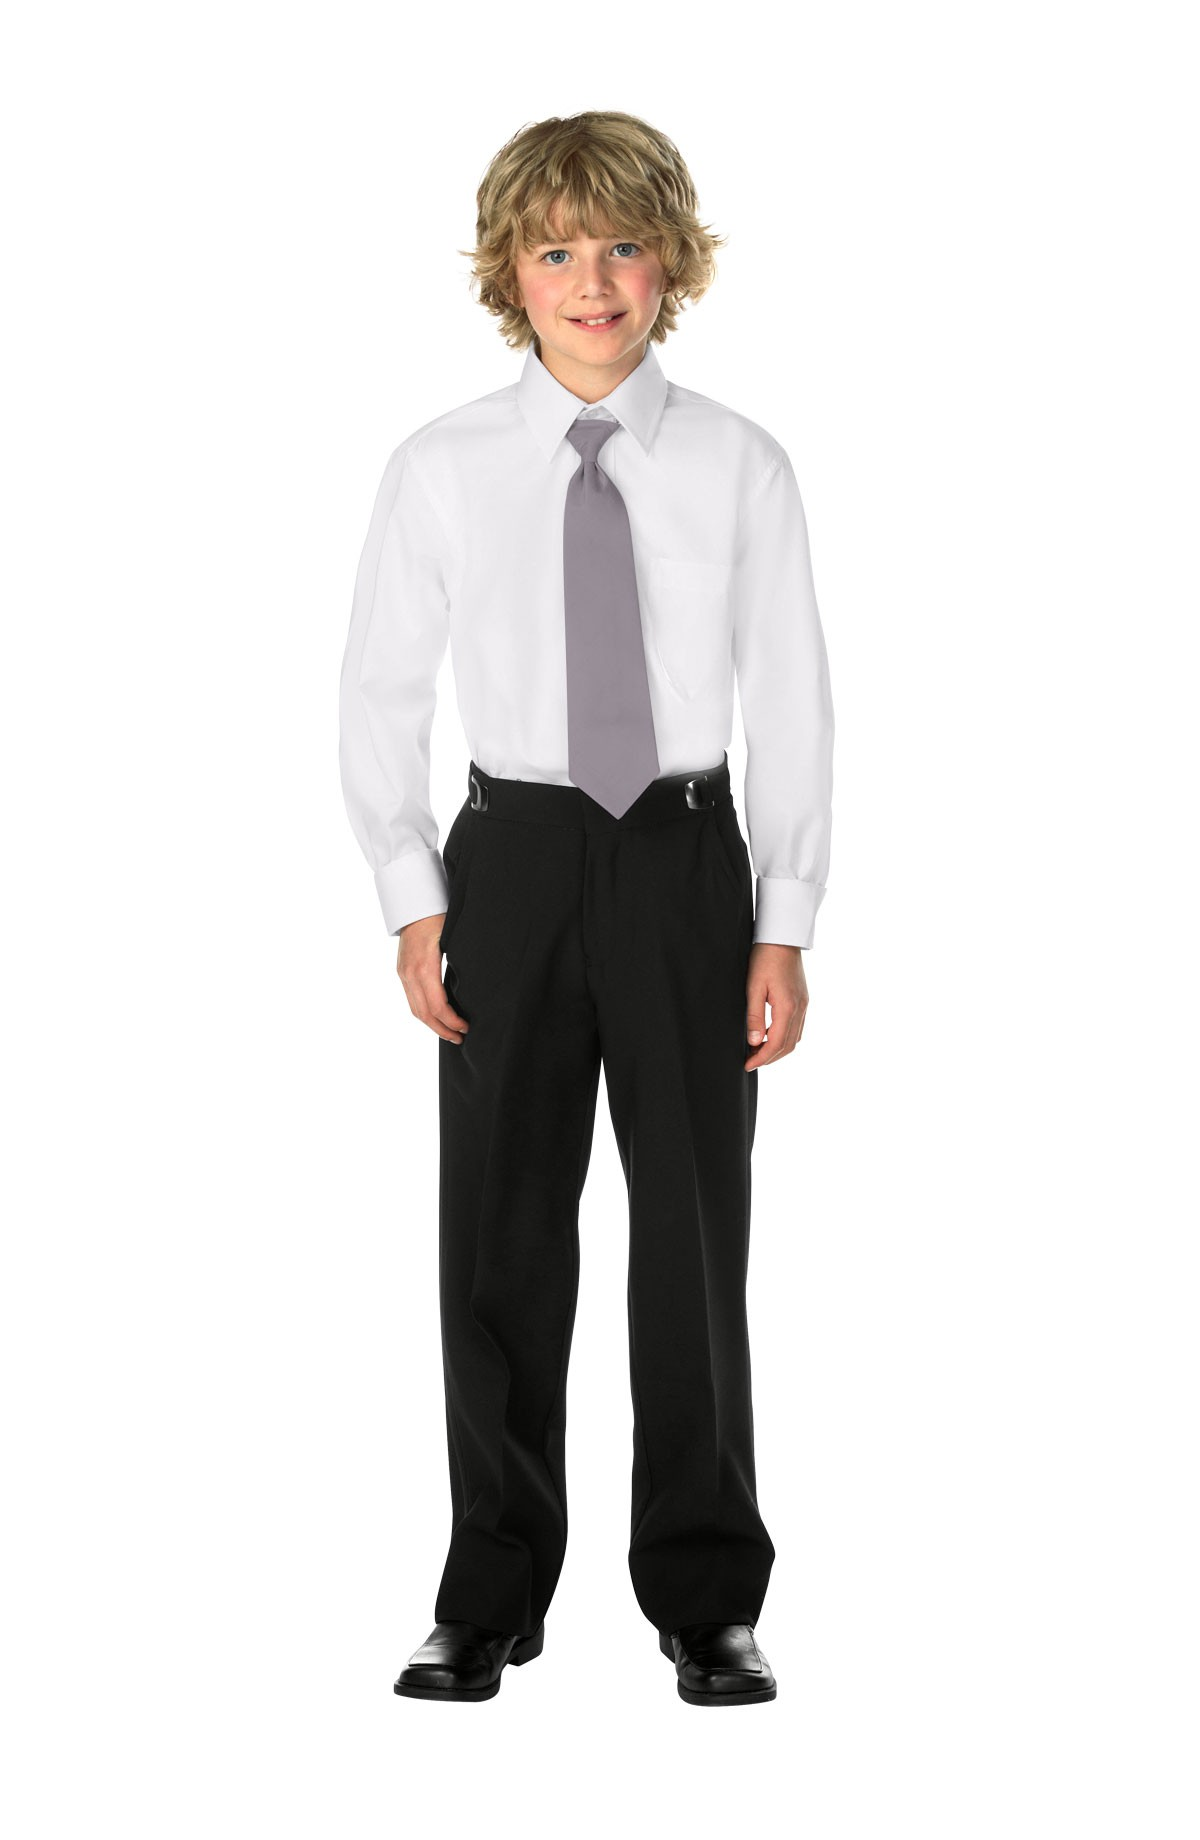 Children's Softended Taffeta Necktie